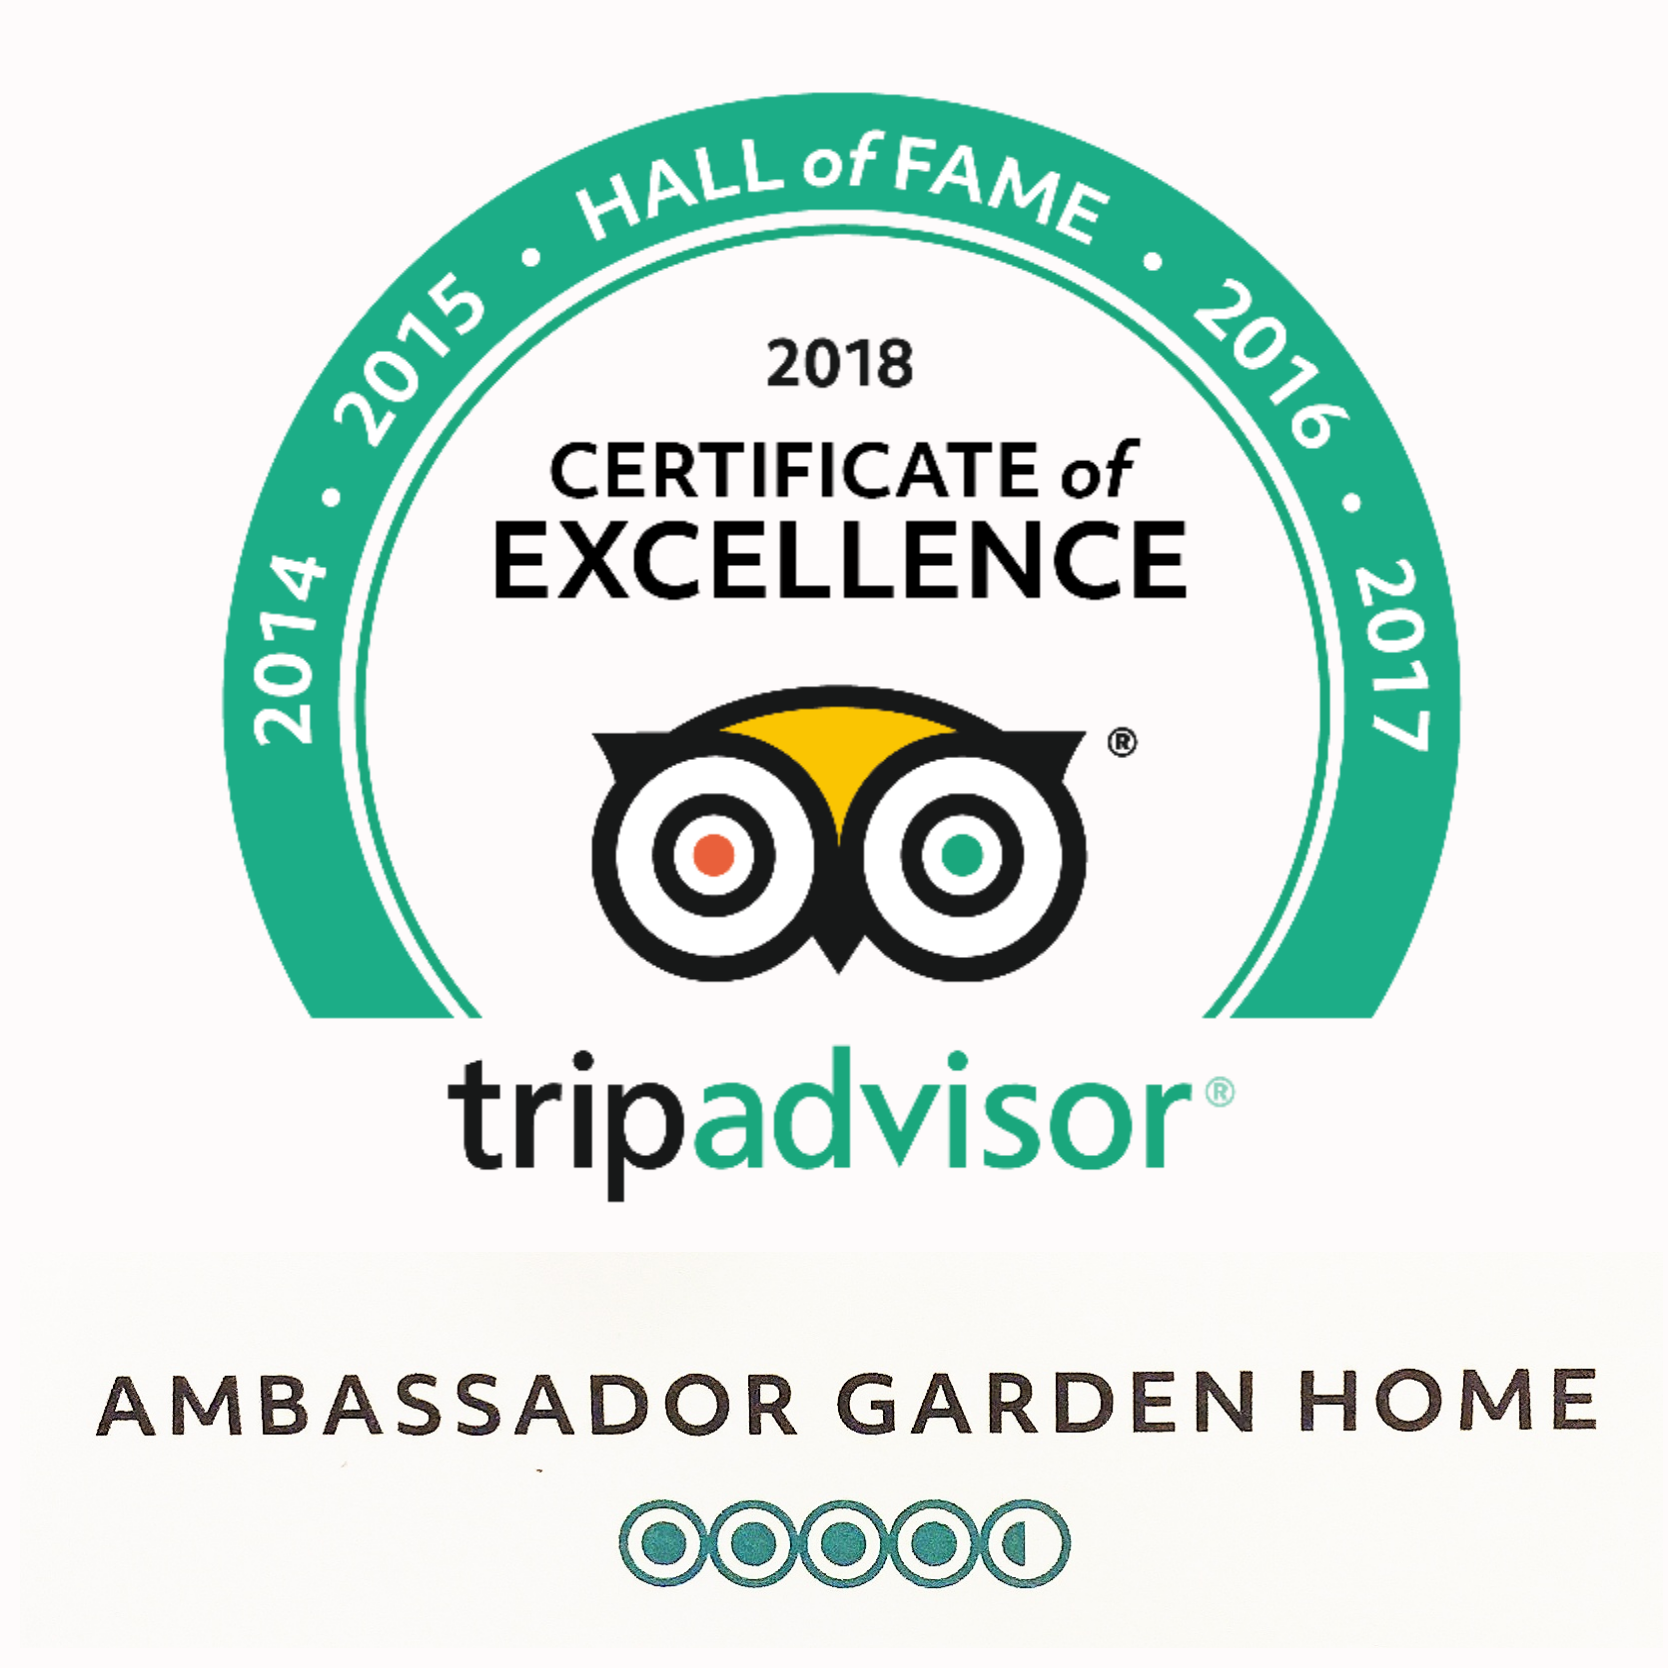 Ambassador Garden Home has been Awarded byTripadvisor in Nepal for 2010 to 2017 the symbol of excellence in hospitality for 8 consecutive years.